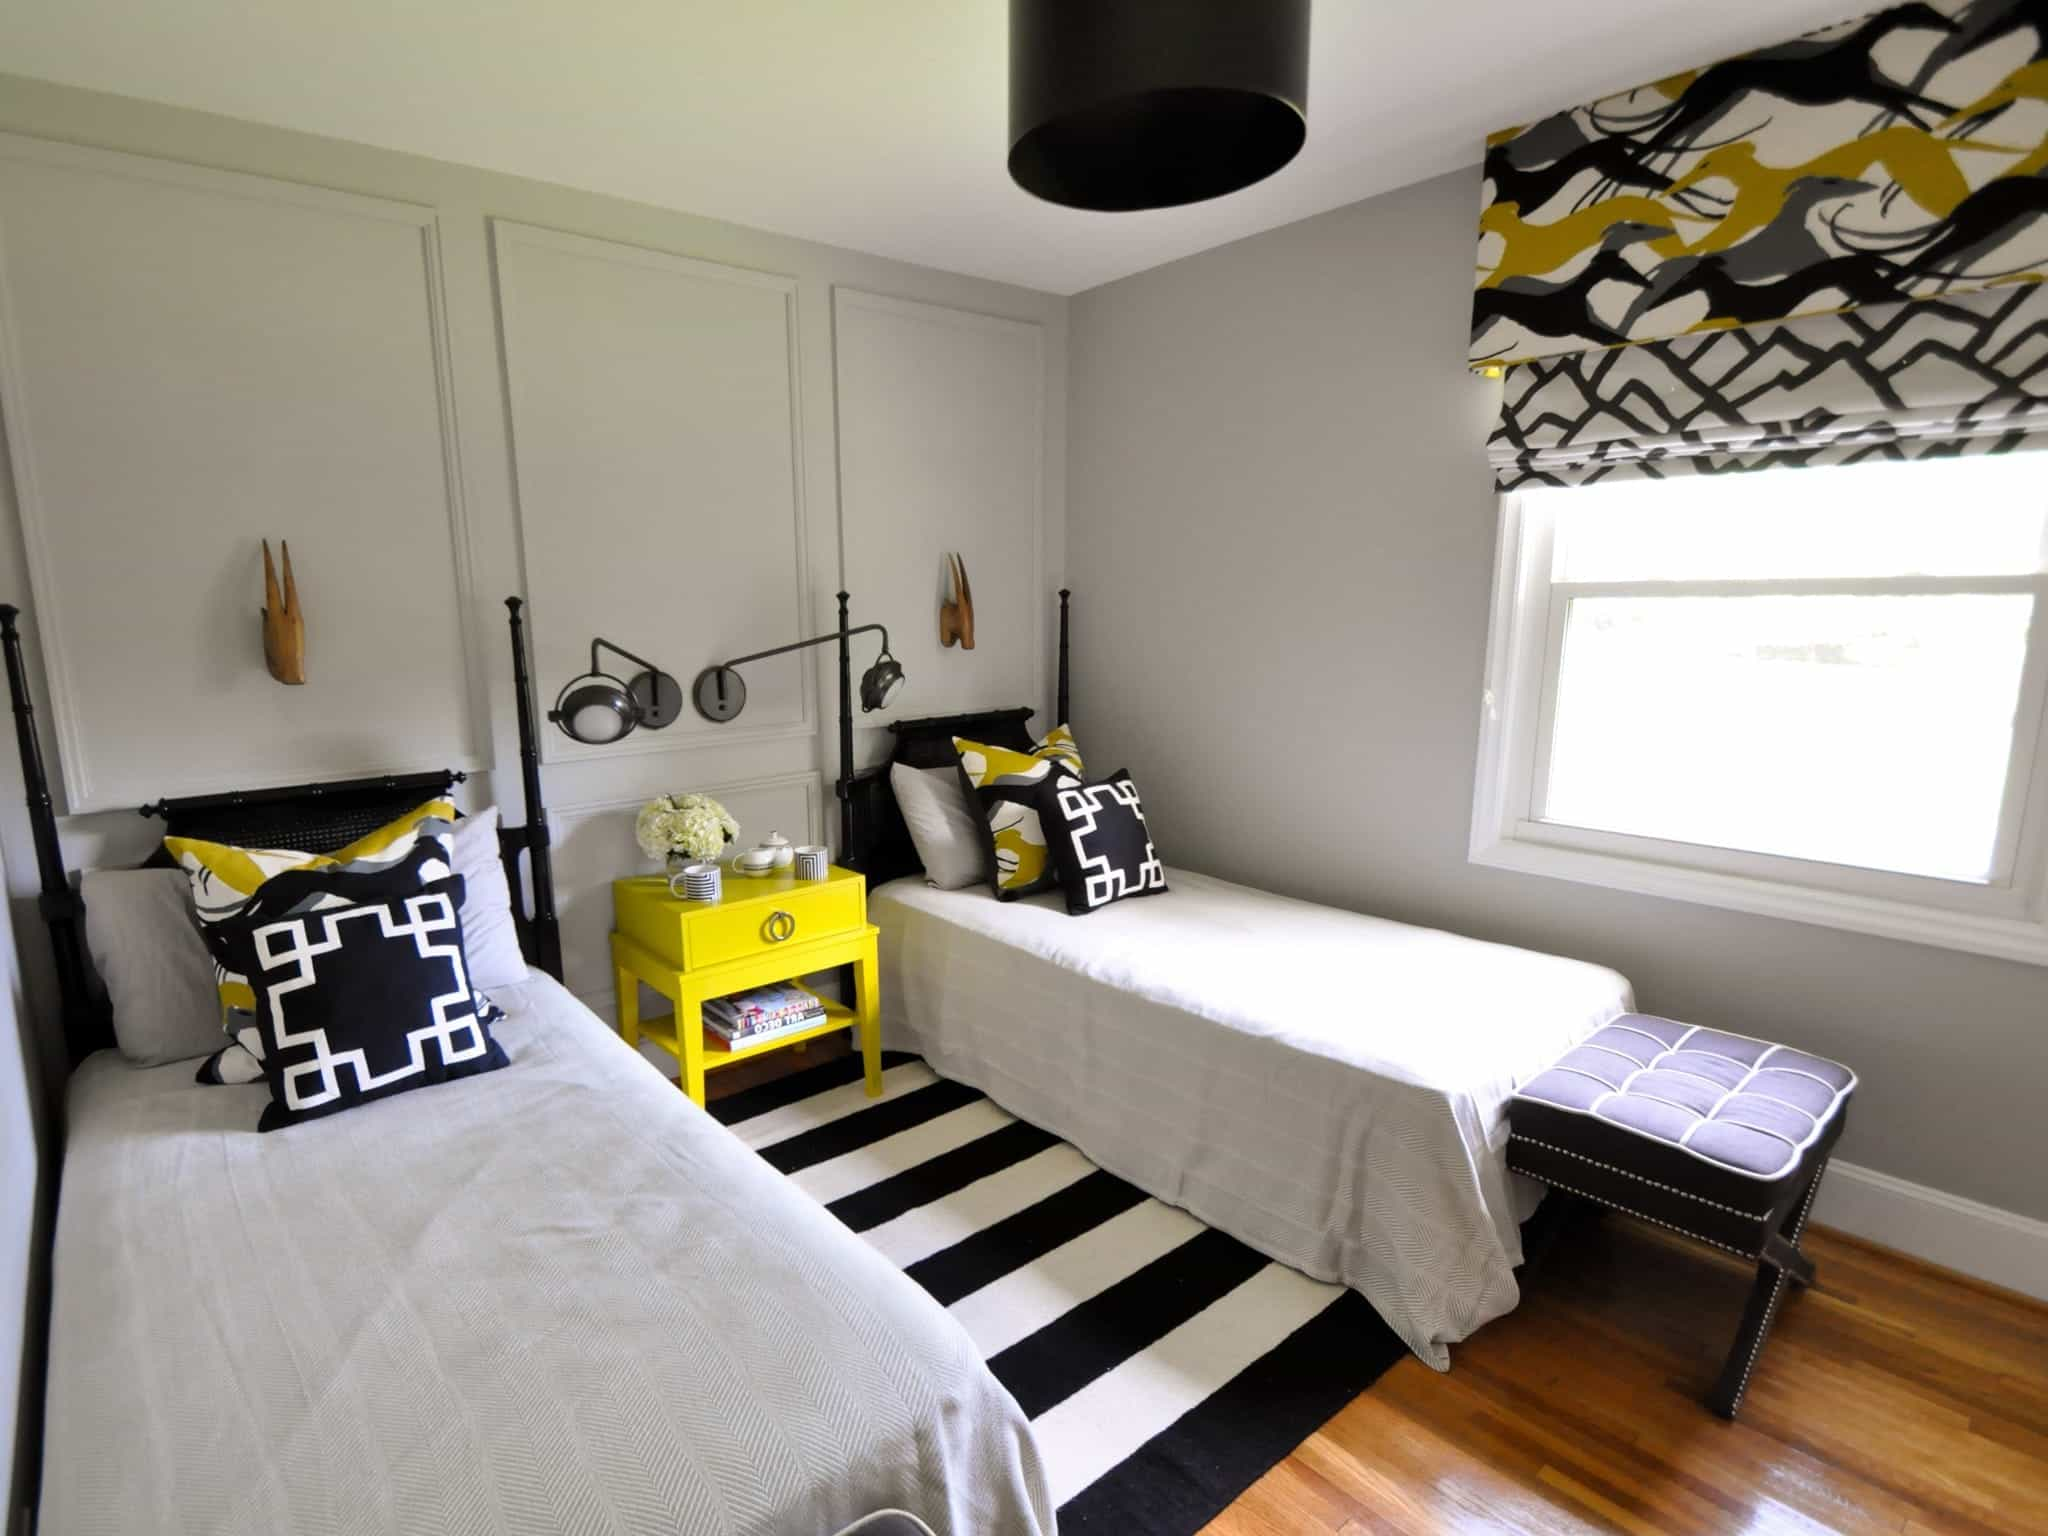 2017 Kids Bedroom With Twin Beds And Black And Yellow Accents (Image 3 of 27)